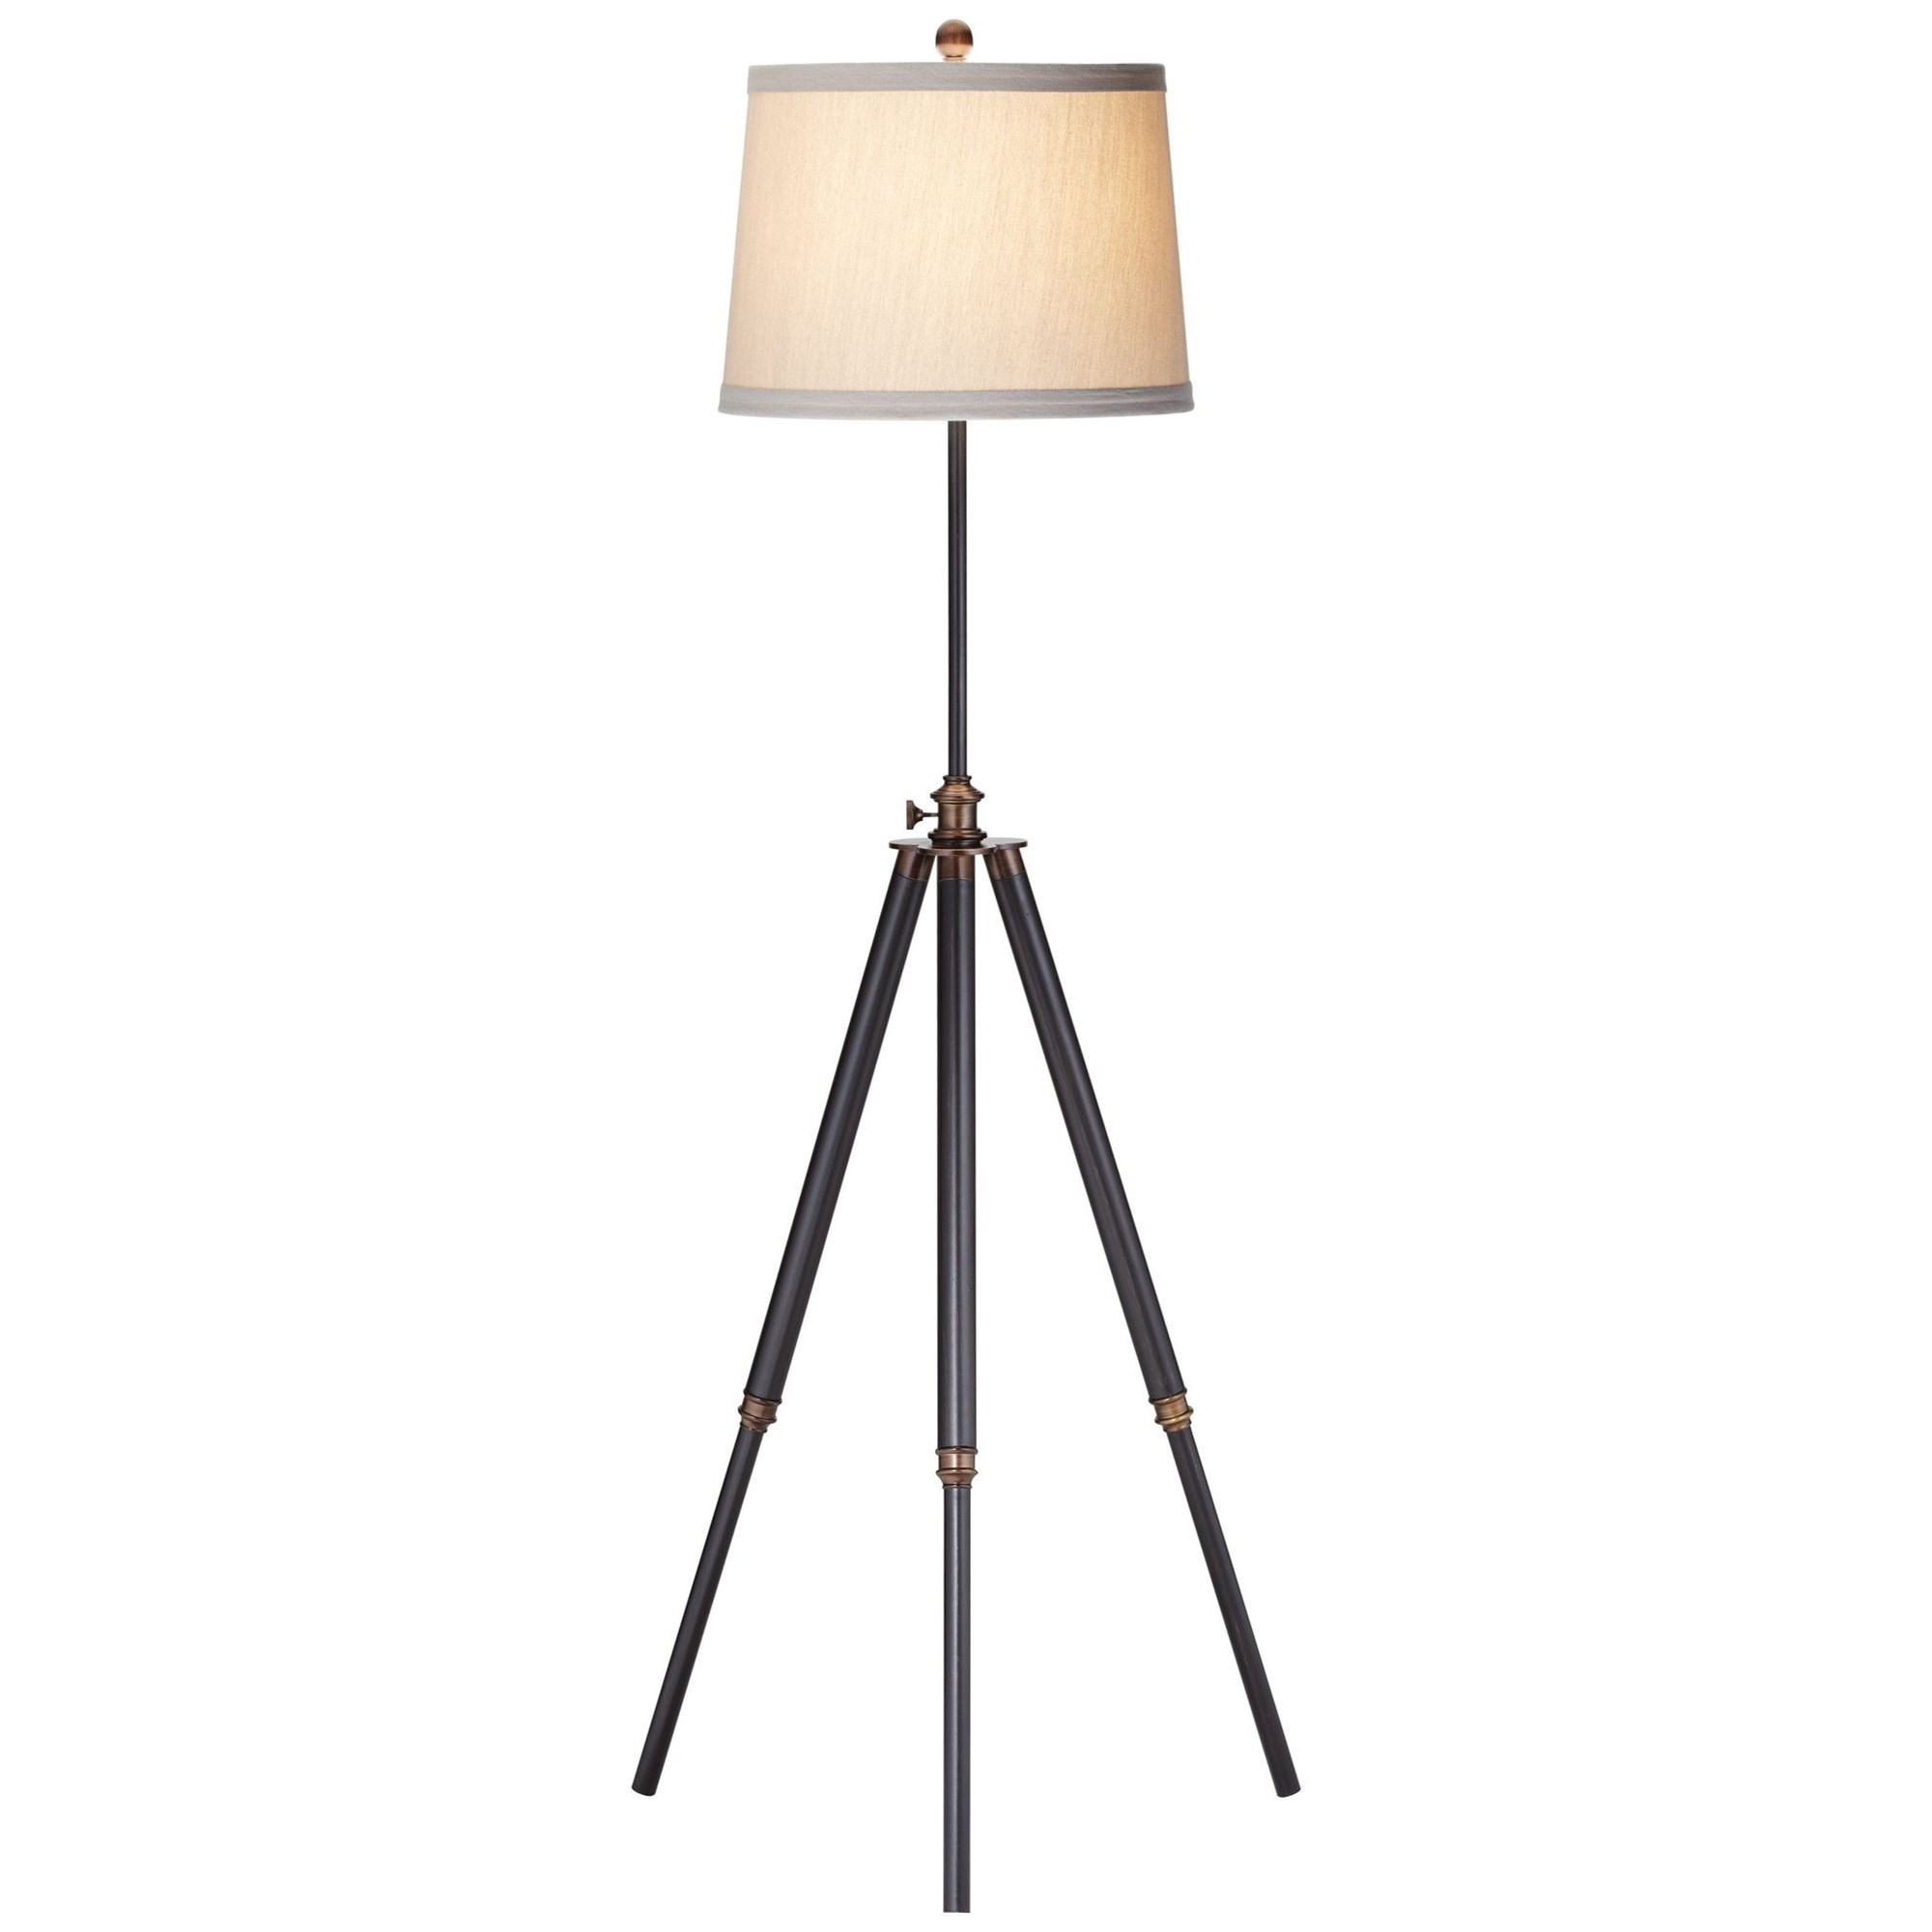 PCL FLOOR LAMPS Tripod Floor Lamp by PCL LIGHTING at Walker's Furniture